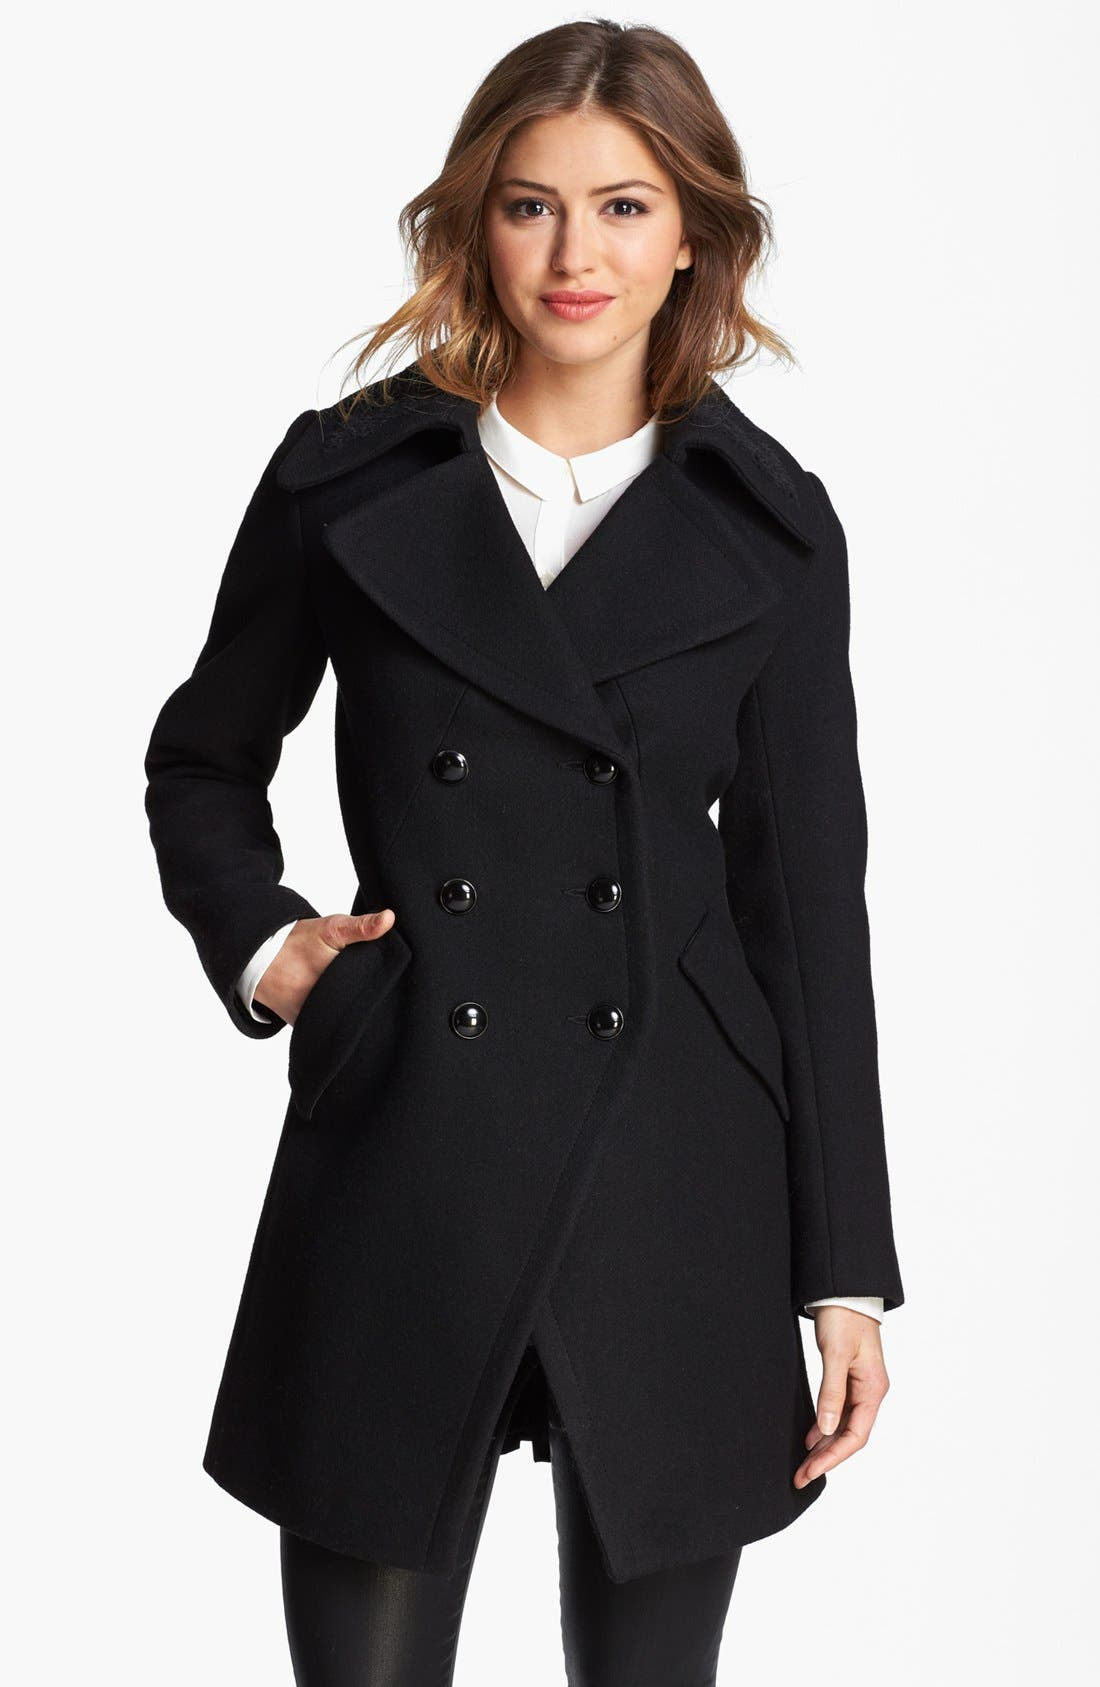 Main Image - Trina Turk Double Breasted Officer's Coat (Petite)